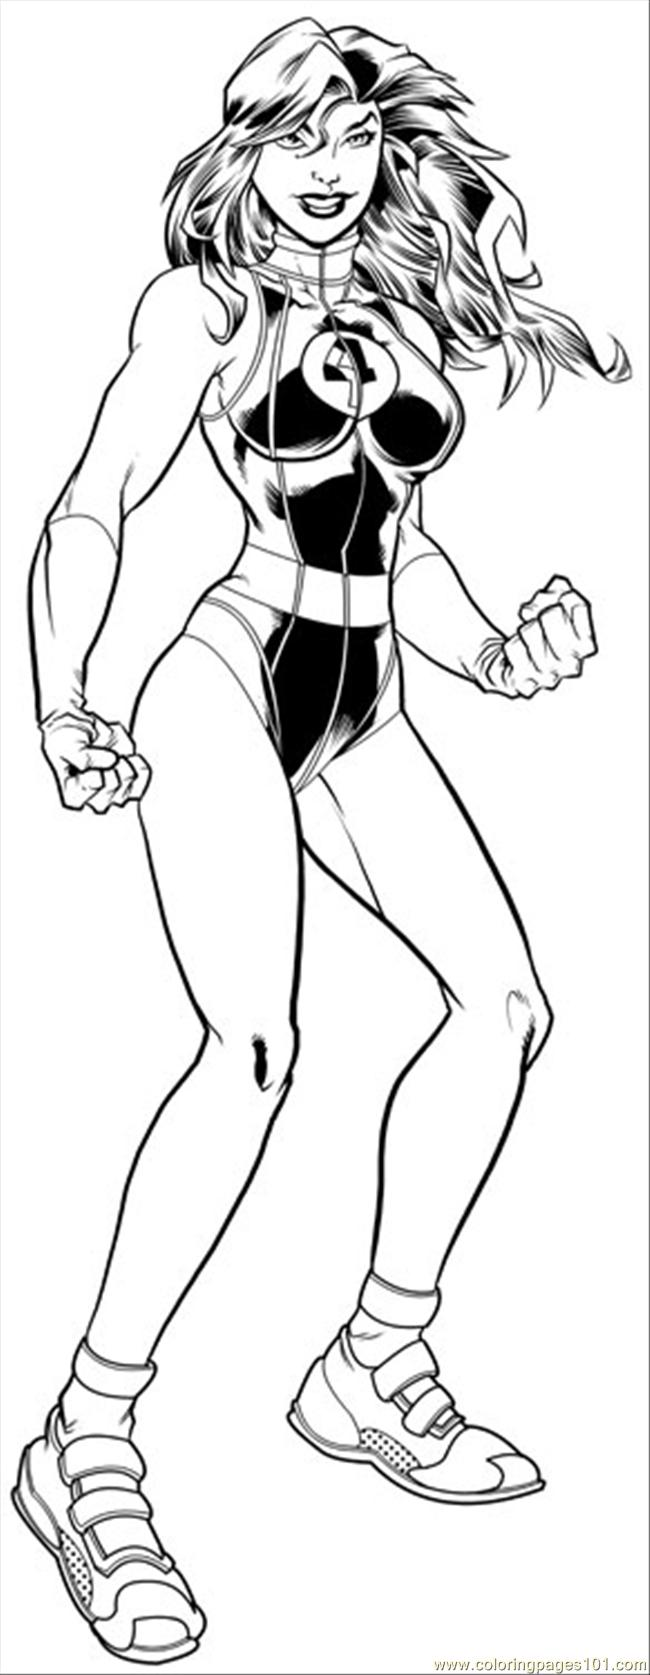 Shehulk Inks R2 Coloring Page - Free Hulk Coloring Pages ...